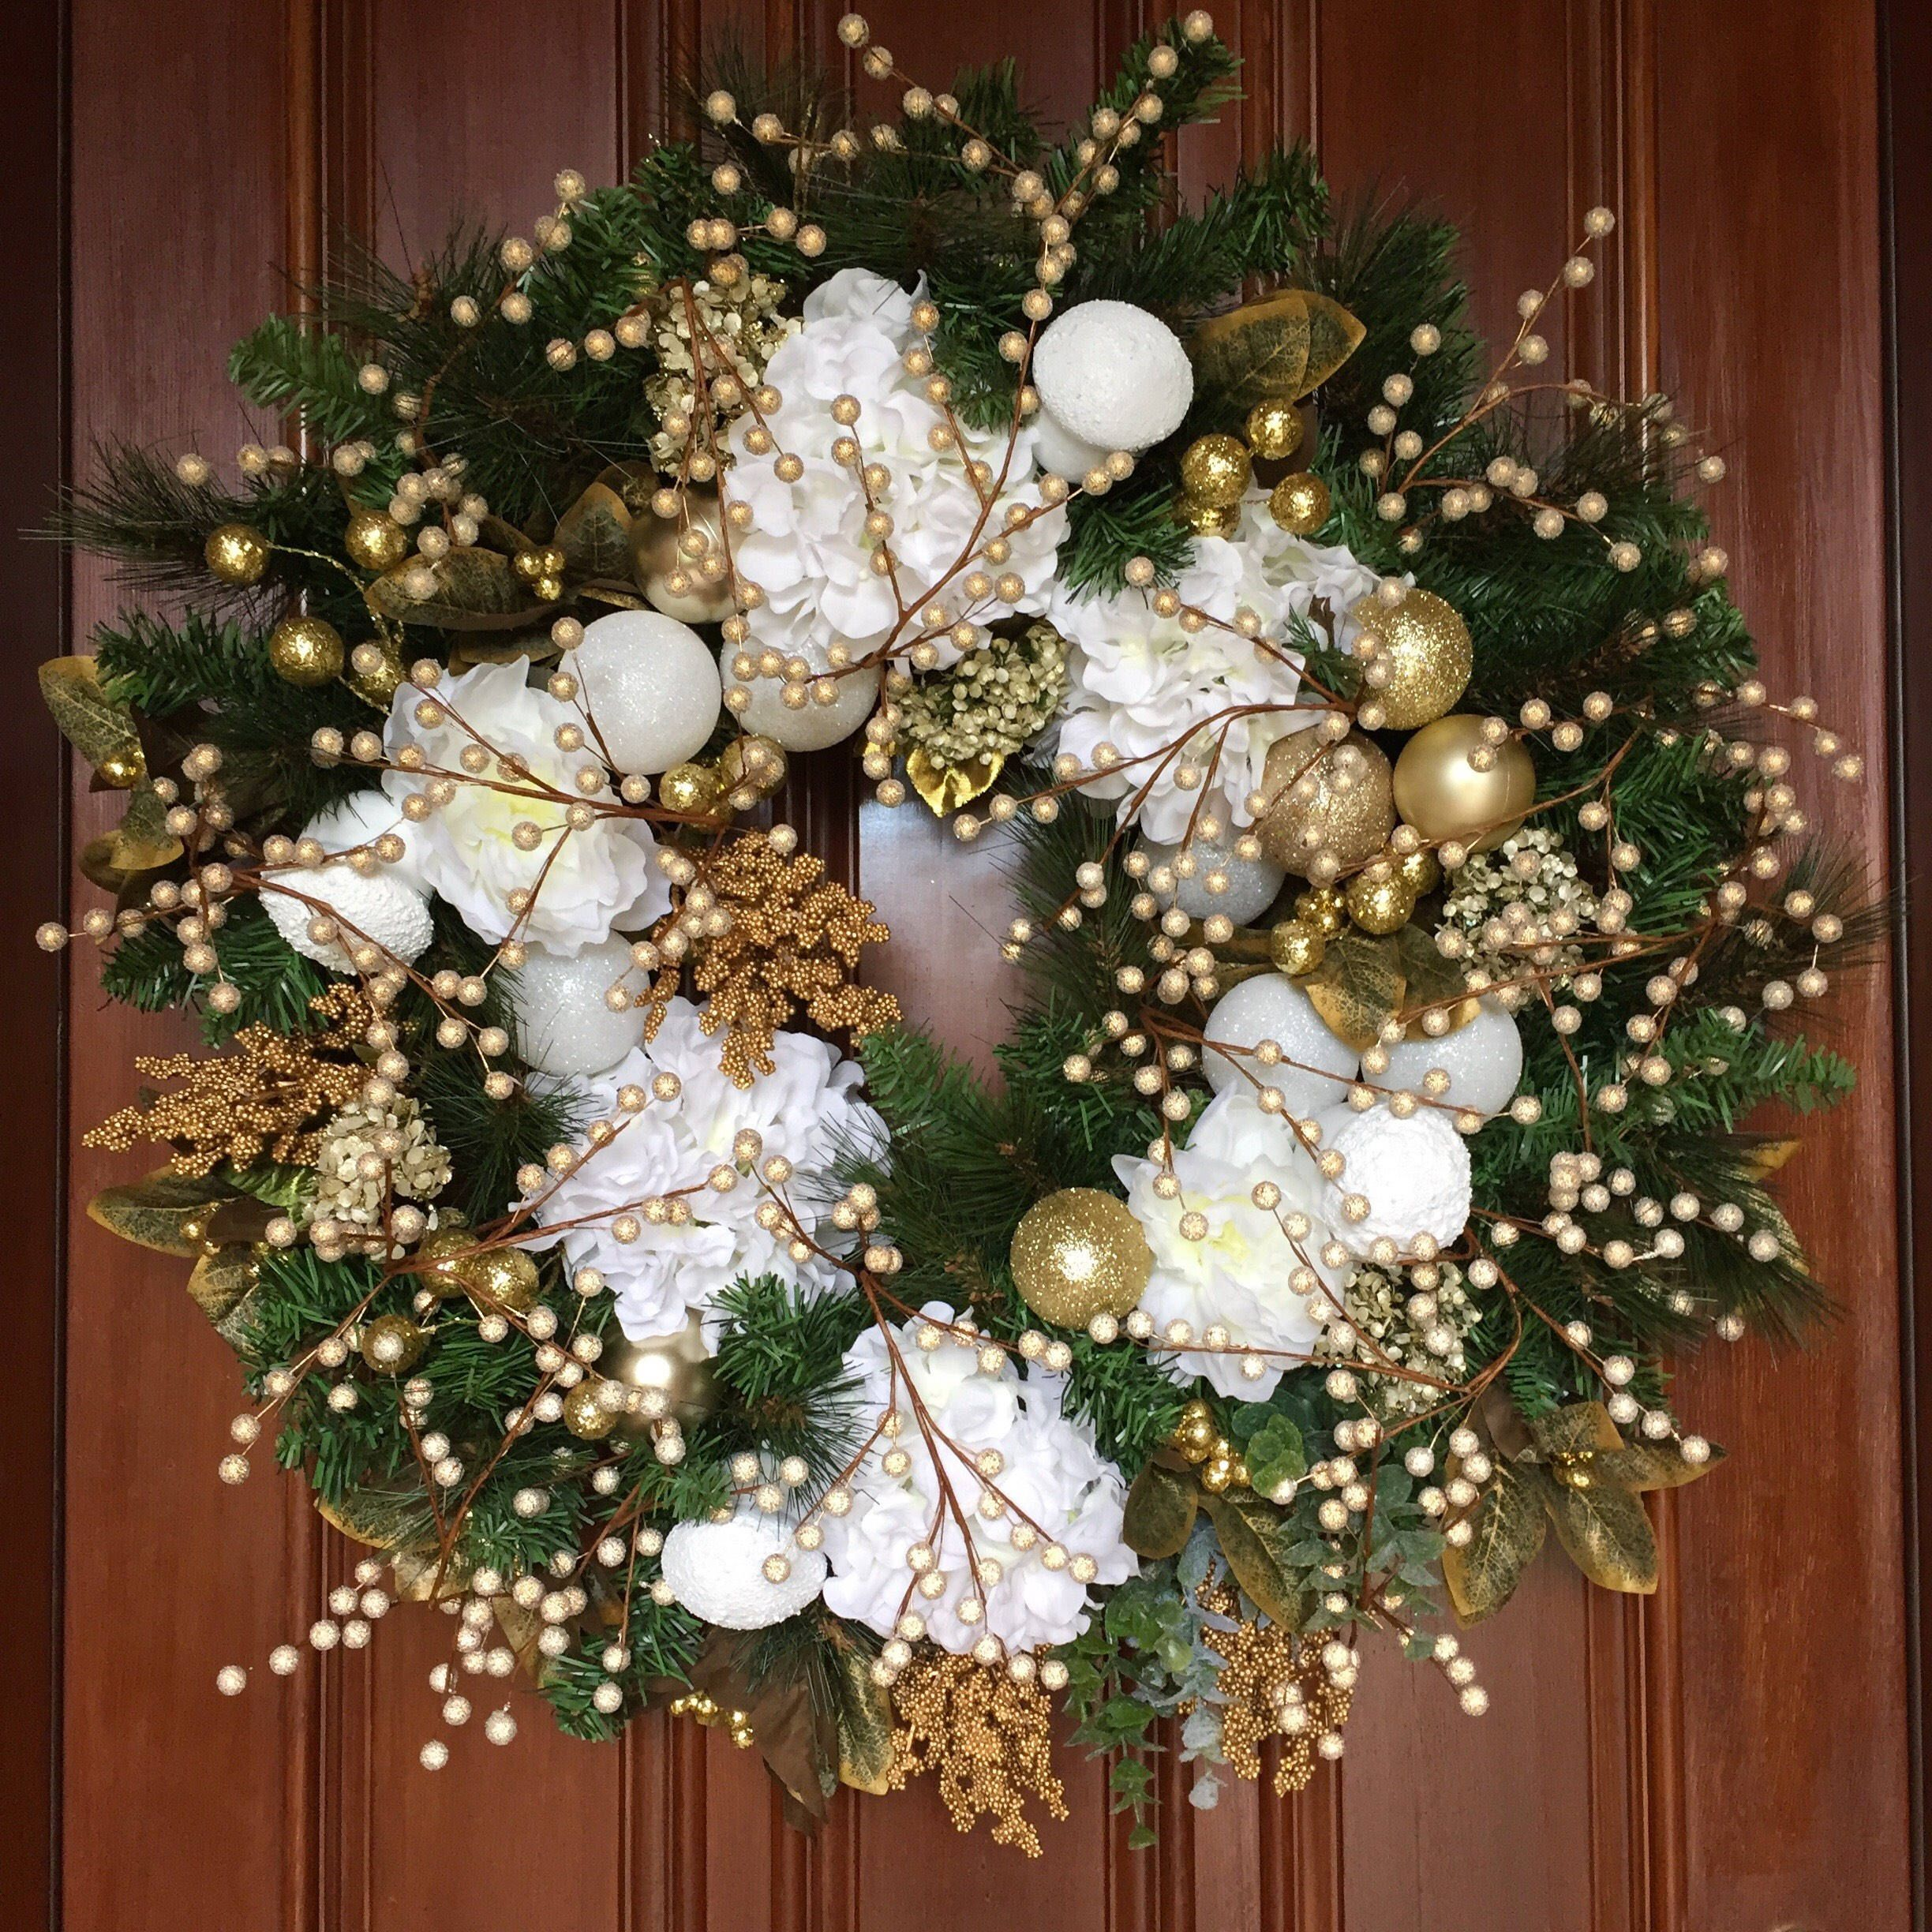 Pin by Rhonda Stephani on Holiday Floral Decor